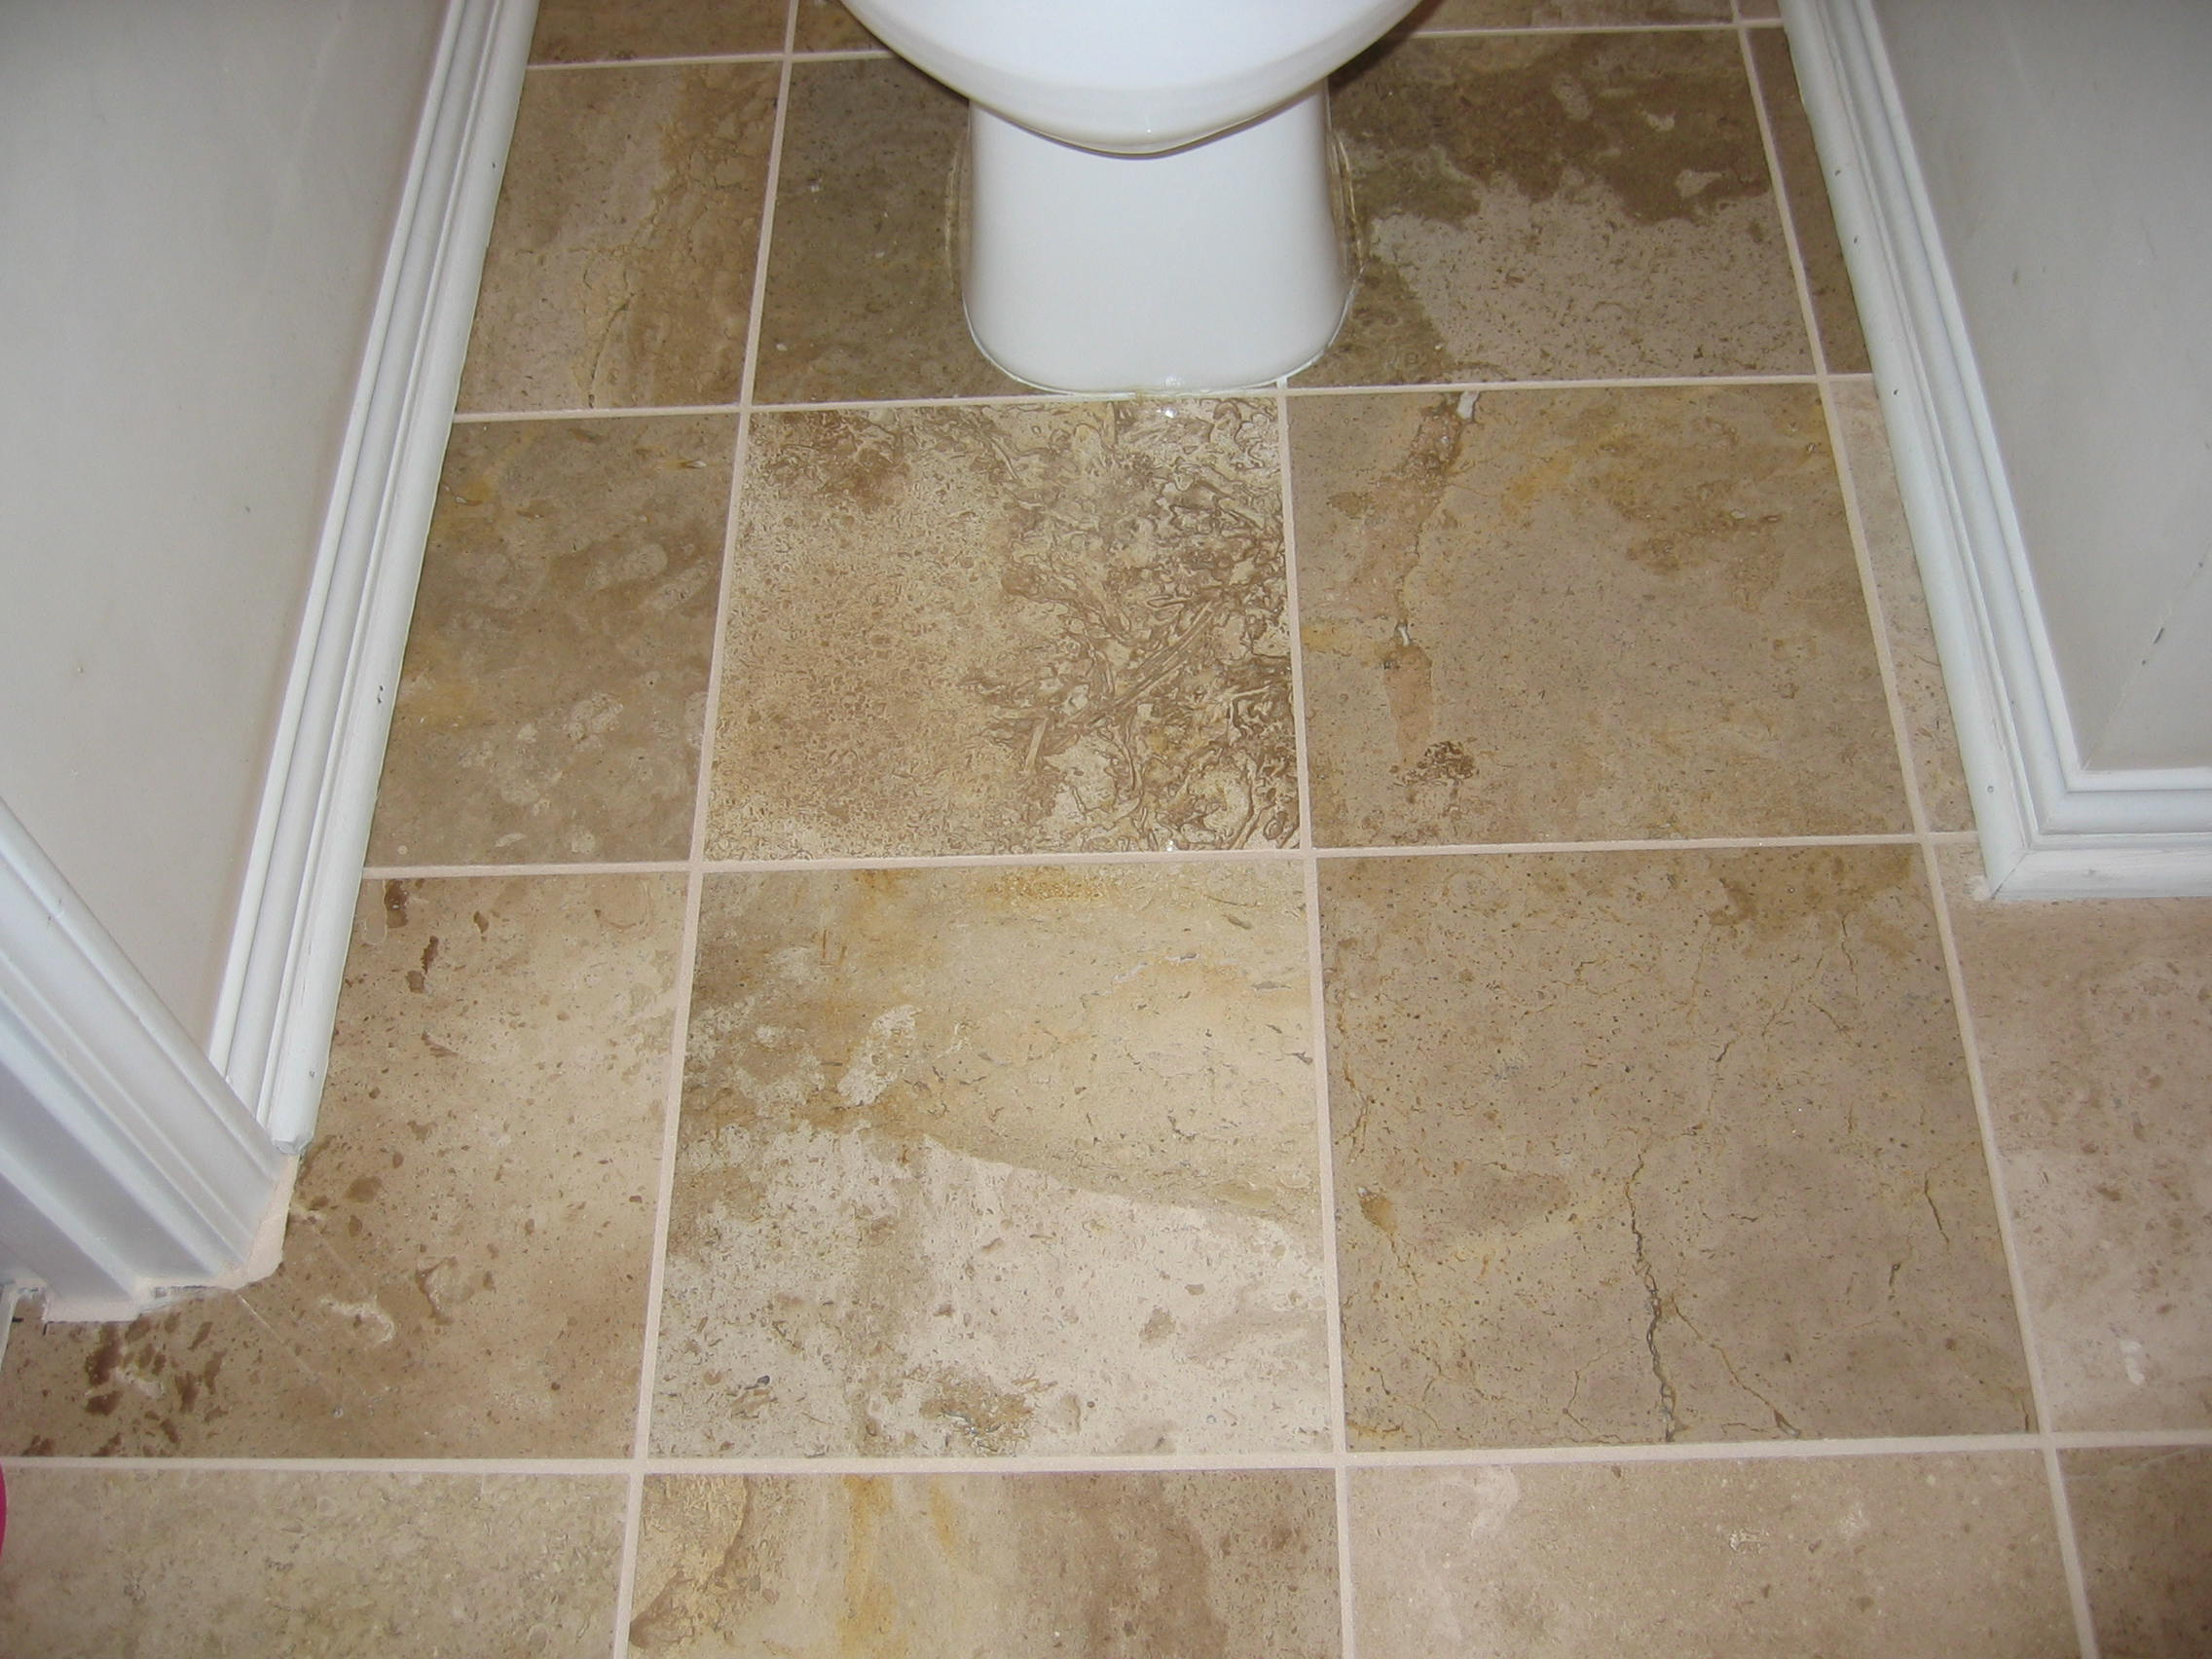 20 pictures about is travertine tile good for bathroom floors with ideas Bathroom flooring tile